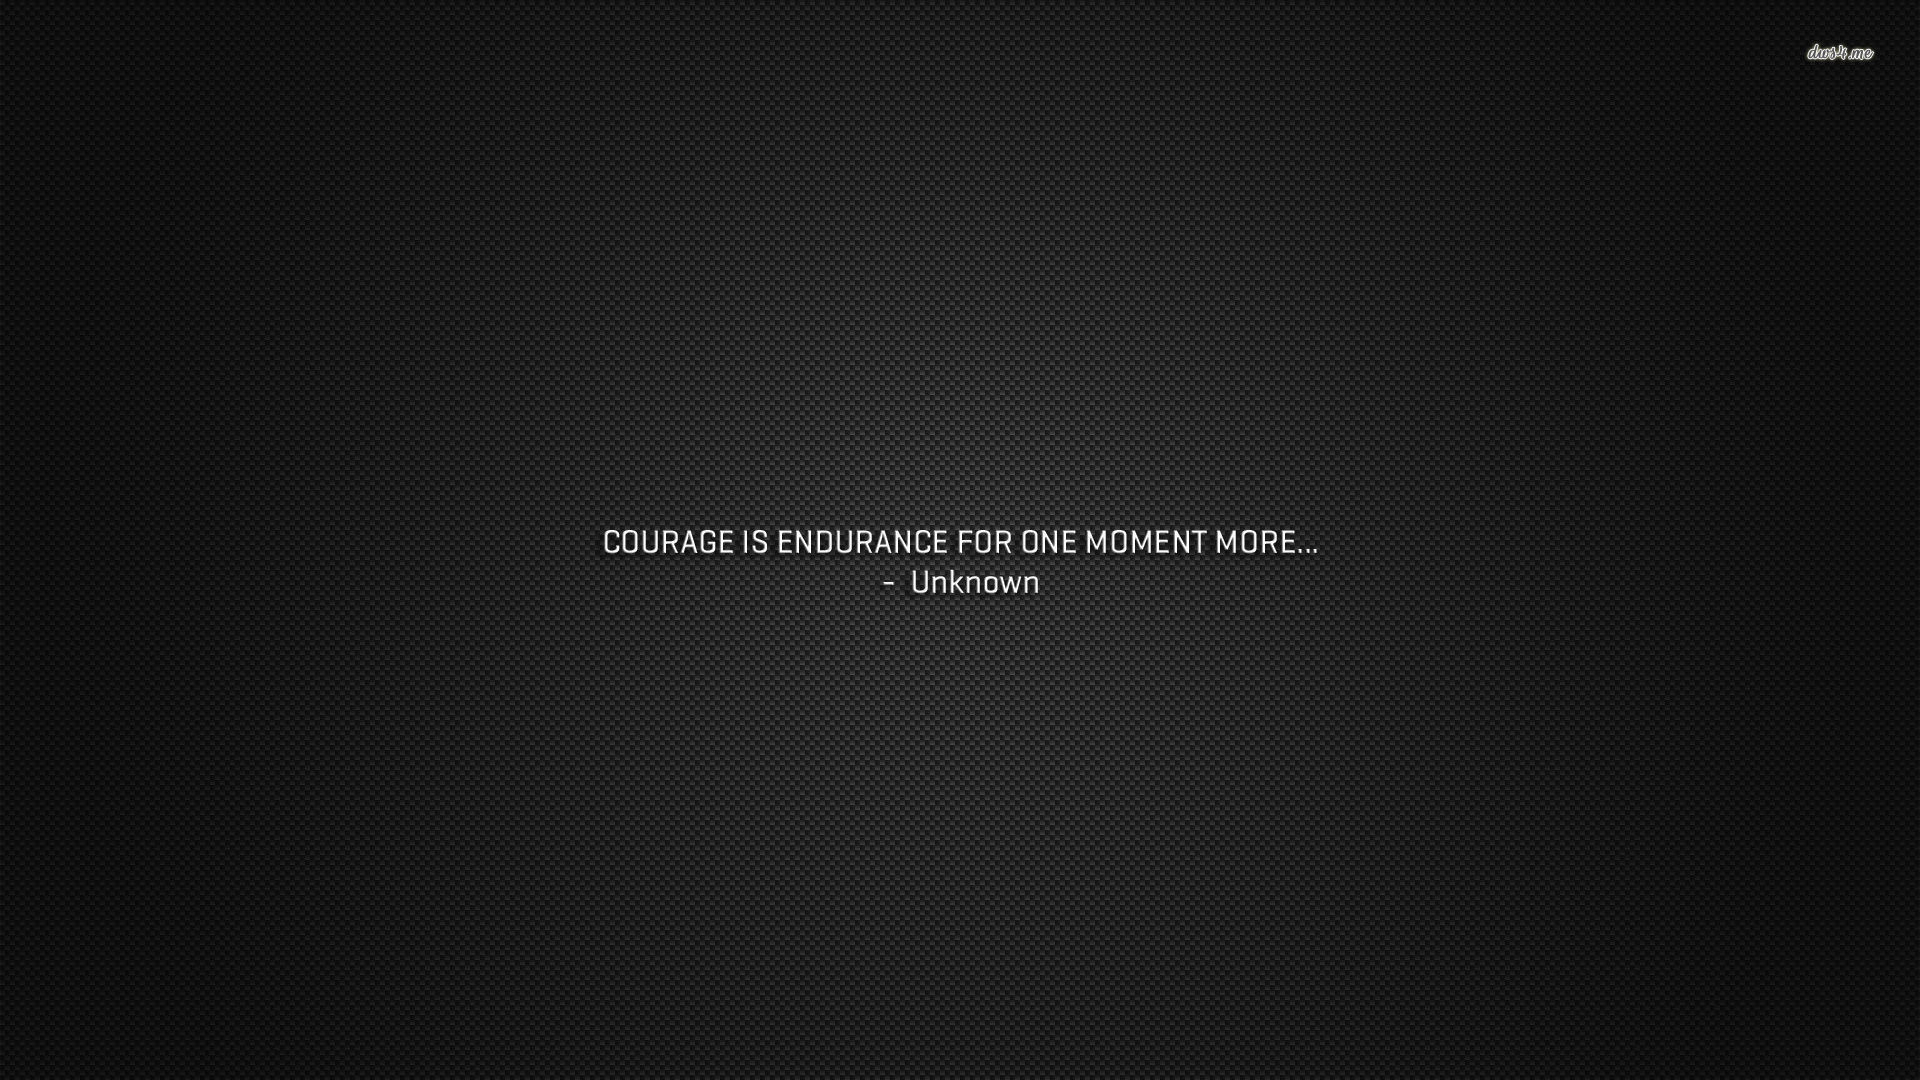 Courage is endurance wallpaper 1280×800 Courage is endurance wallpaper .